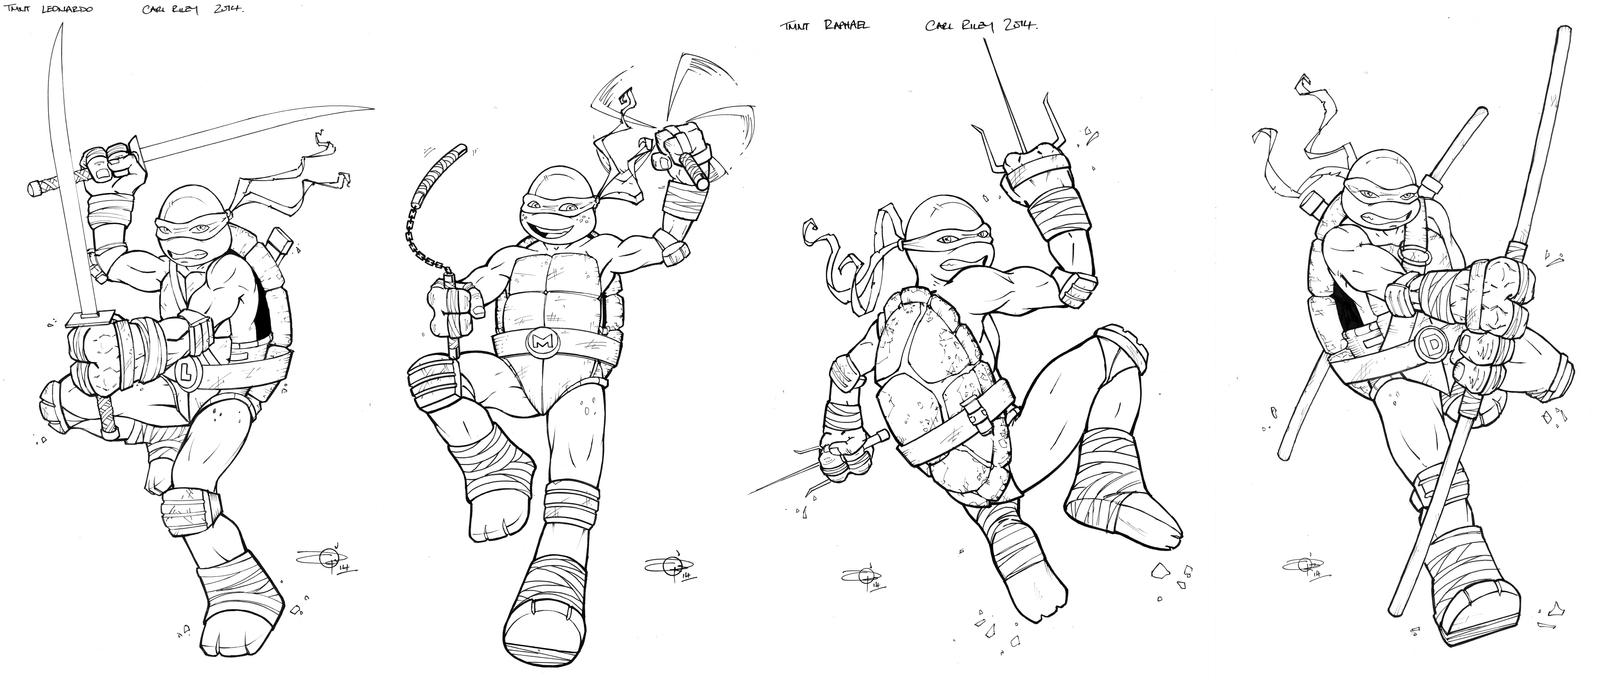 TMNT hi-res lines for colouring comp! by Carl-Riley-Art